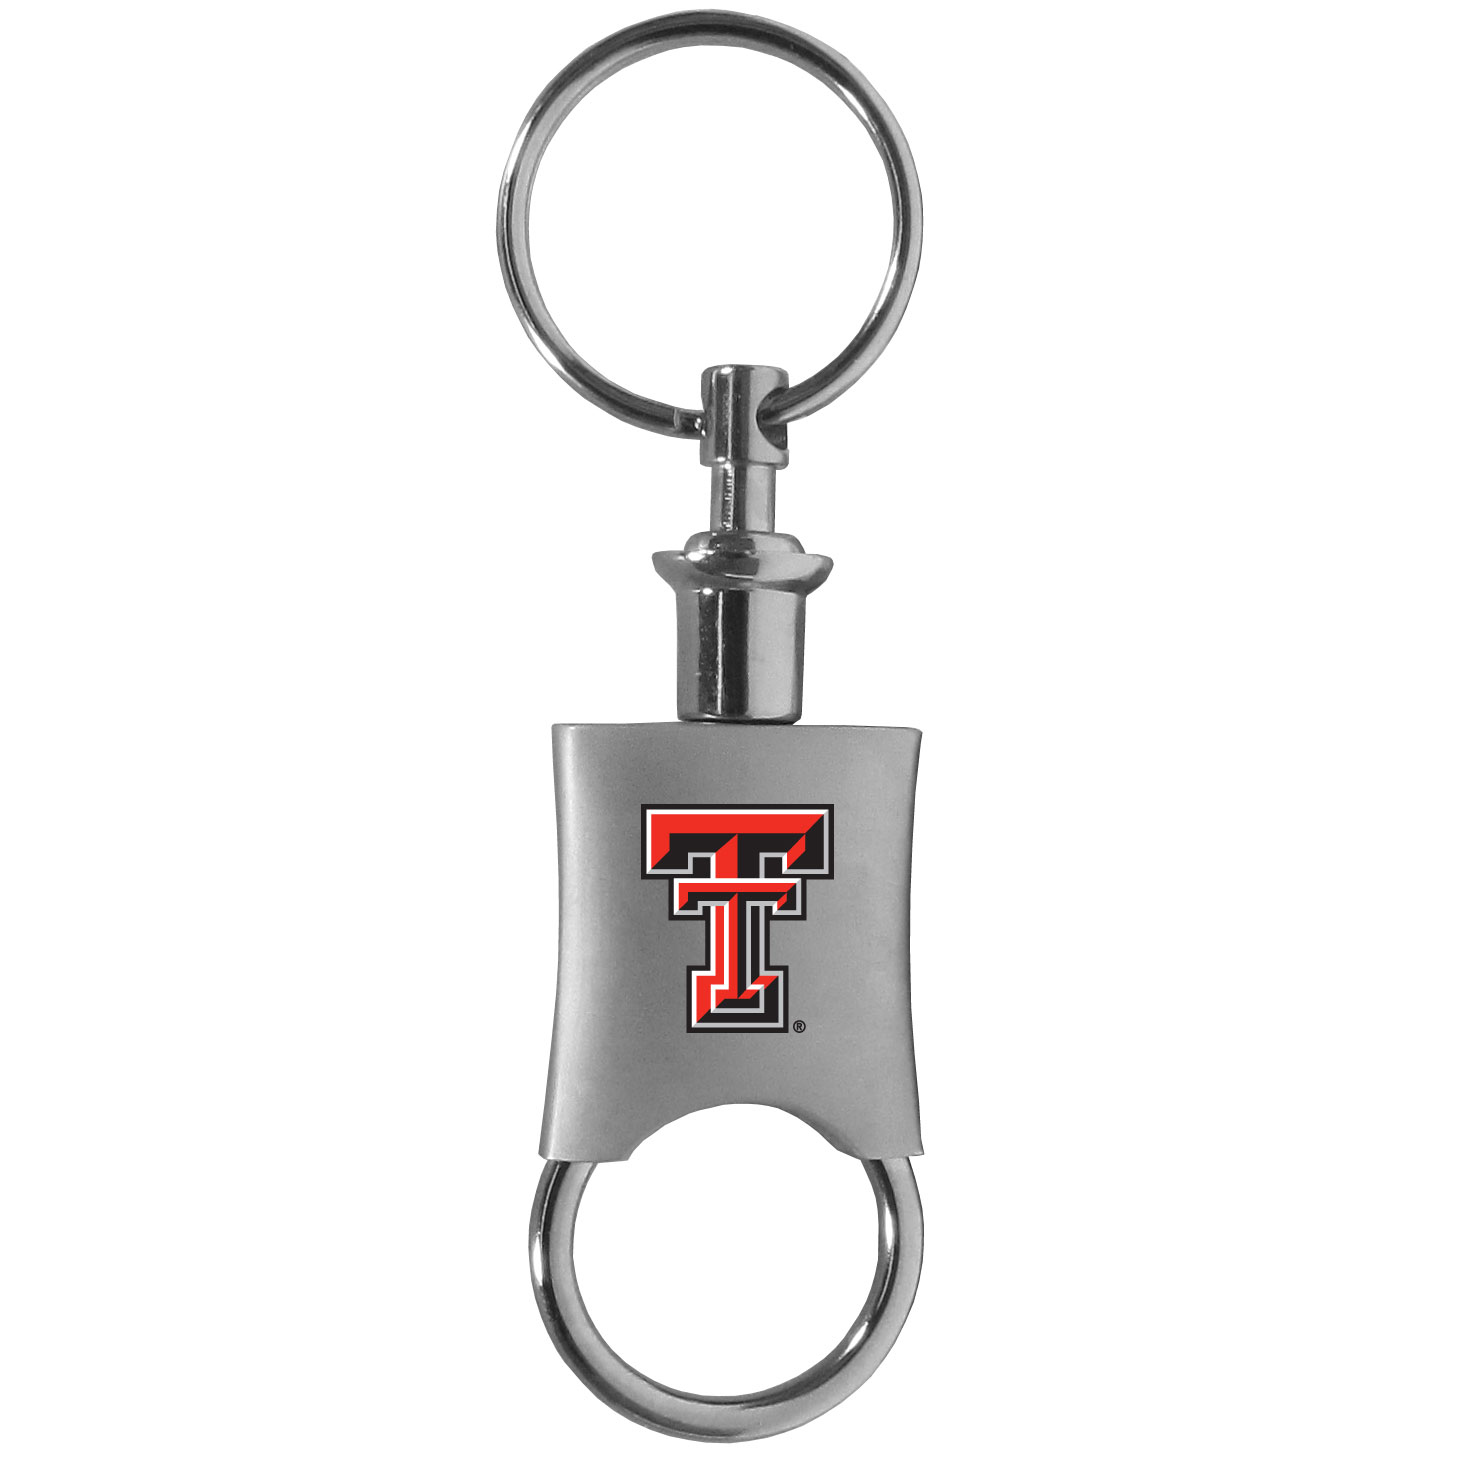 Texas Tech Raiders Valet Key Chain - This high-quality key chain is both fashionable and functional. The key chain features to key rings and one of them detaches easily for valet use so you do not have to risk giving out all of your keys. The beautiful brushed metal finish features the Texas Tech Raiders logo expertly printed on front.